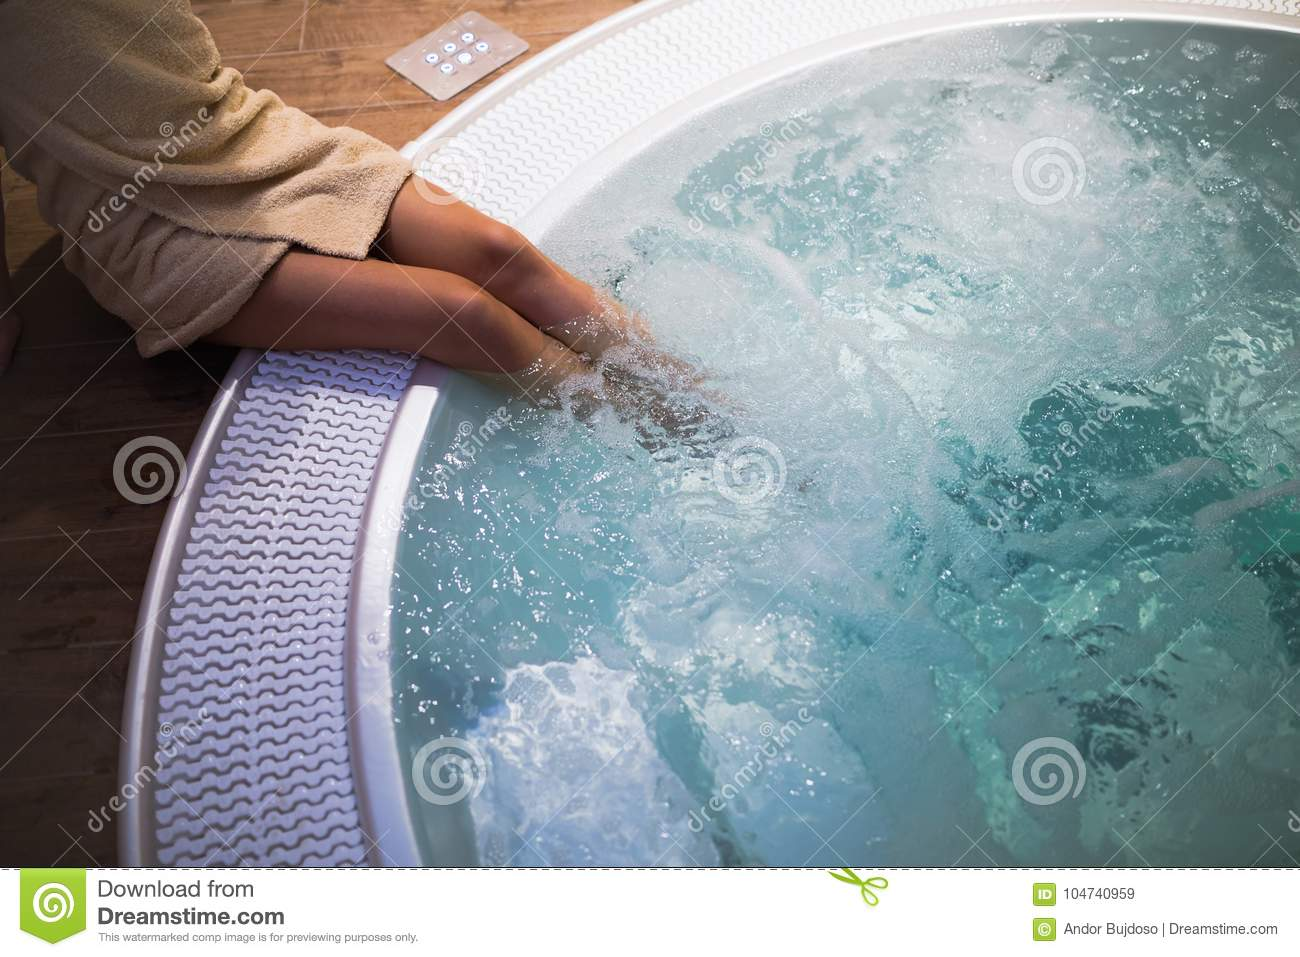 Modern Jacuzzi In Wellness Spa Resort Stock Image - Image of summer ...